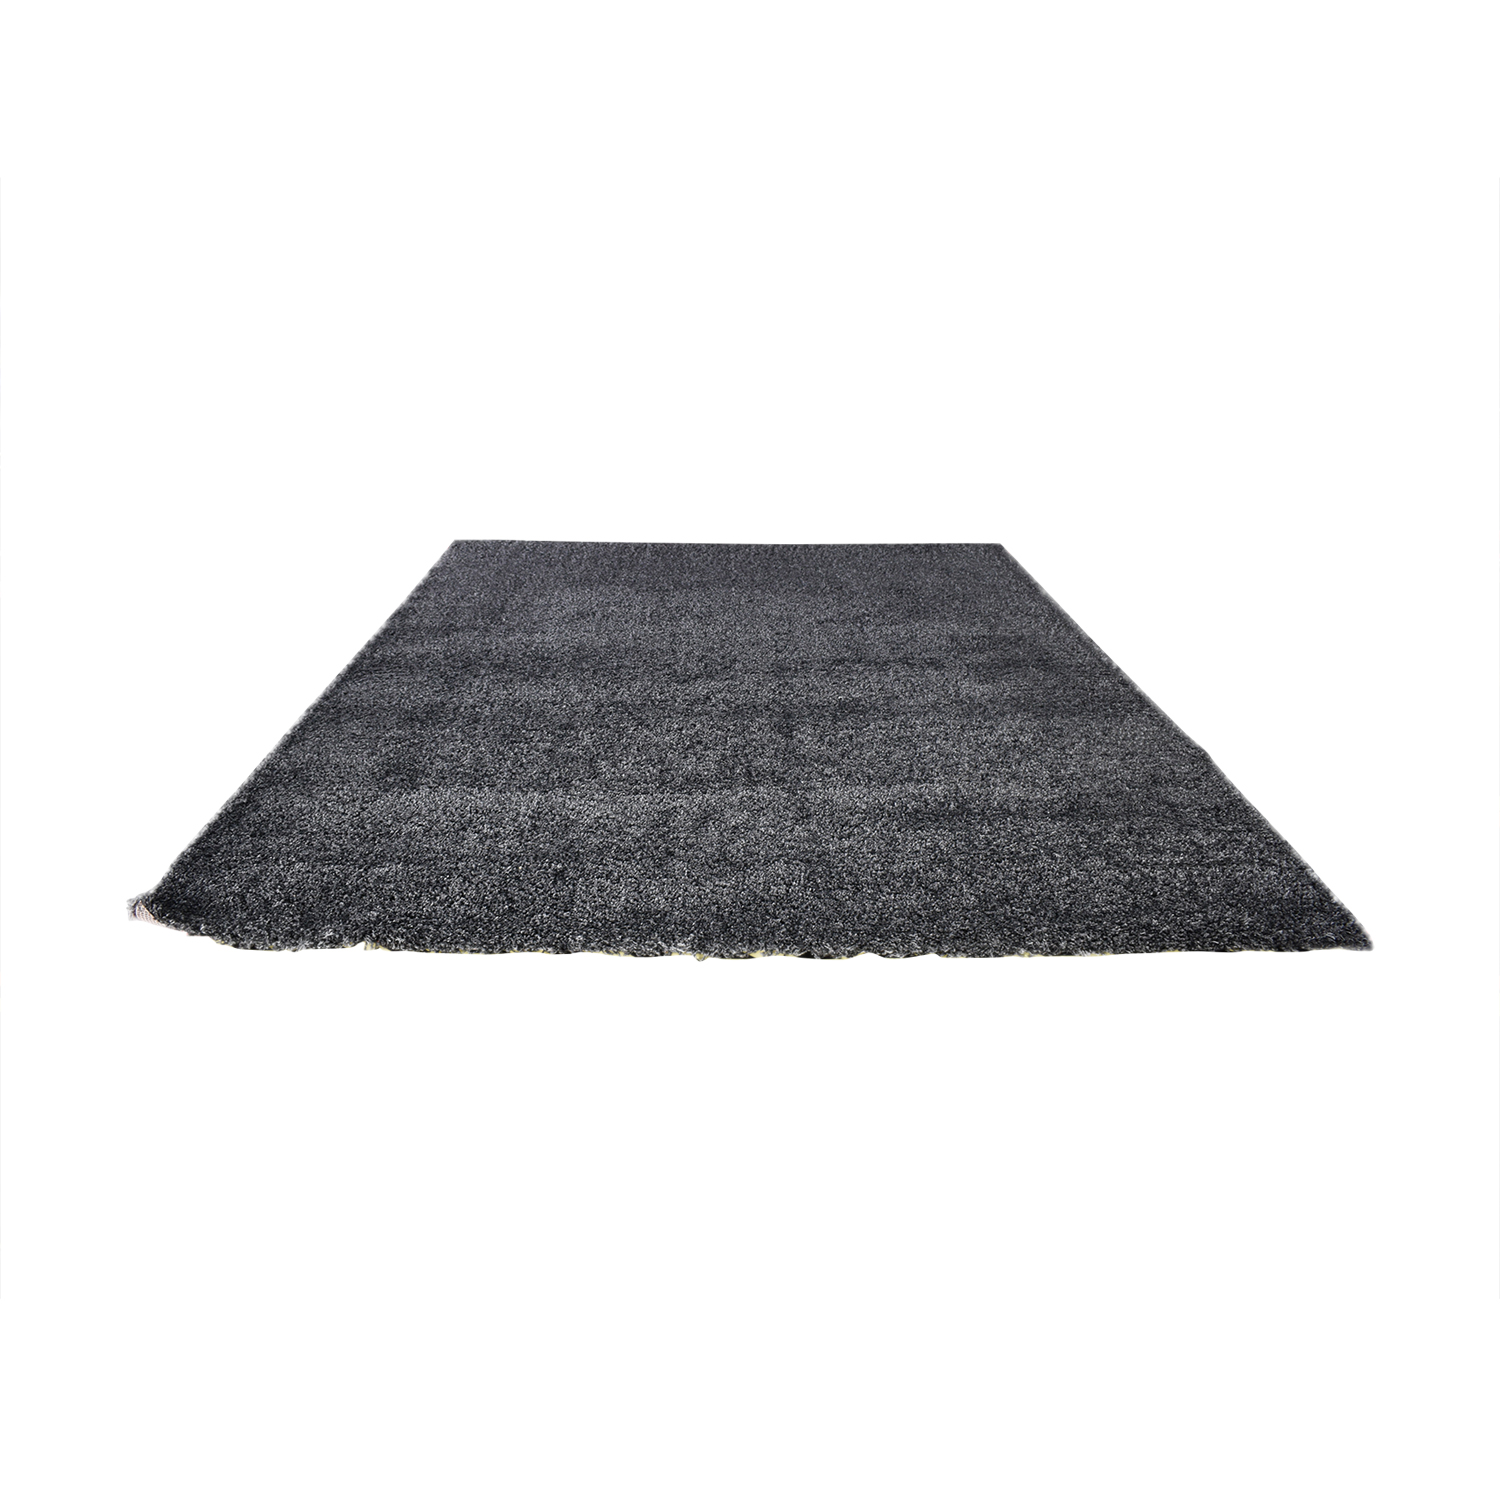 Crate & Barrel Crate & Barrel Black Wool Rug nj